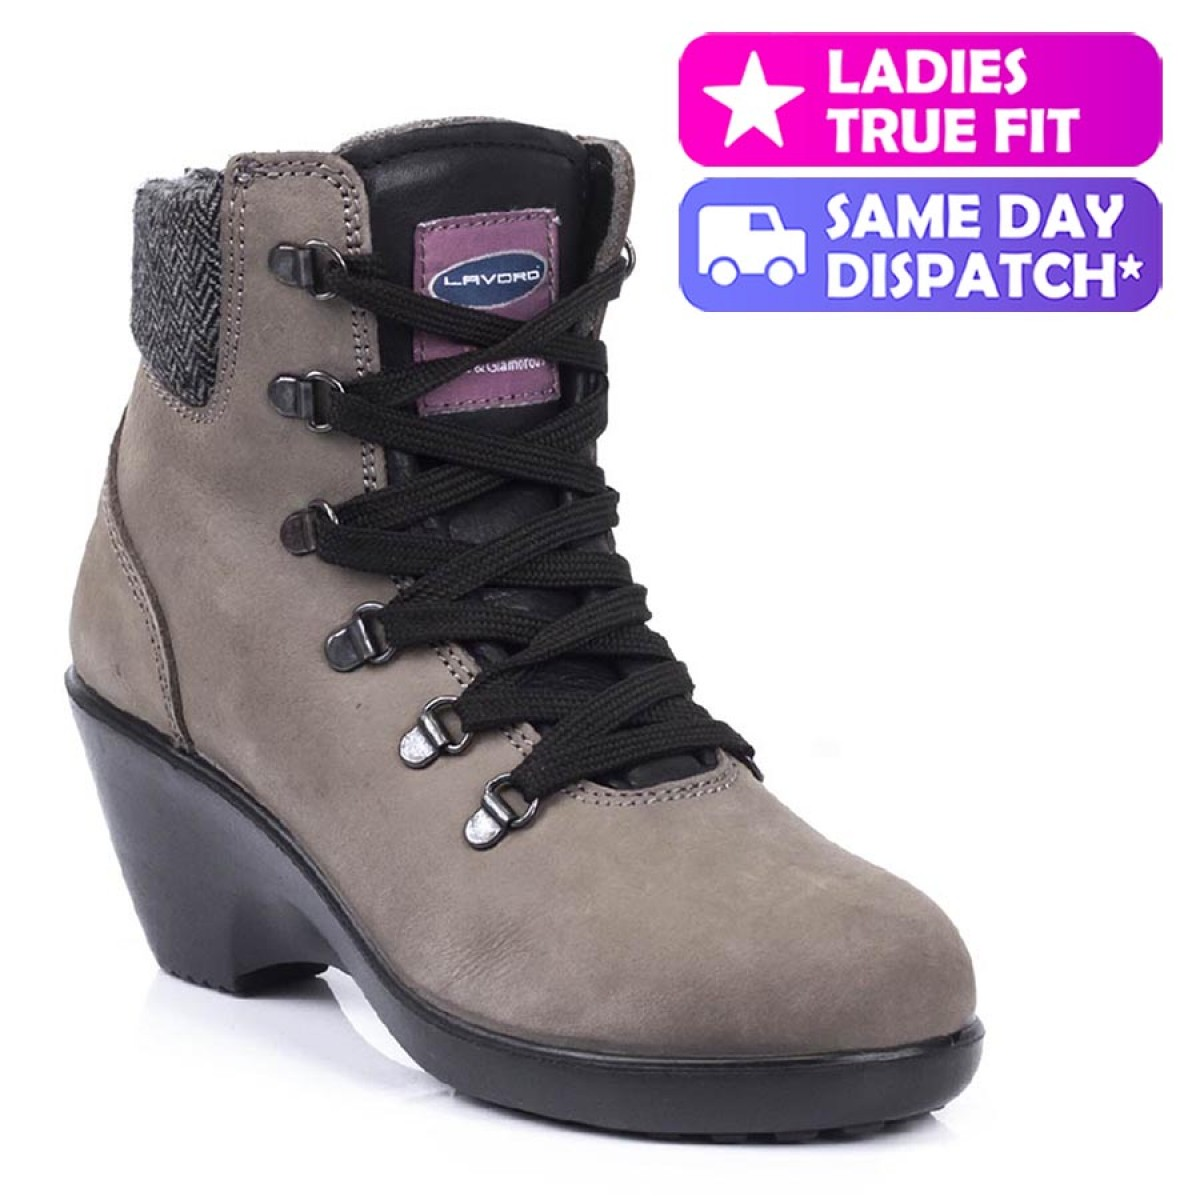 8135d1a9c8f Lavoro Geena ESD Black Nubuck Leather Steel Toe Cap Ladies Safety Boots